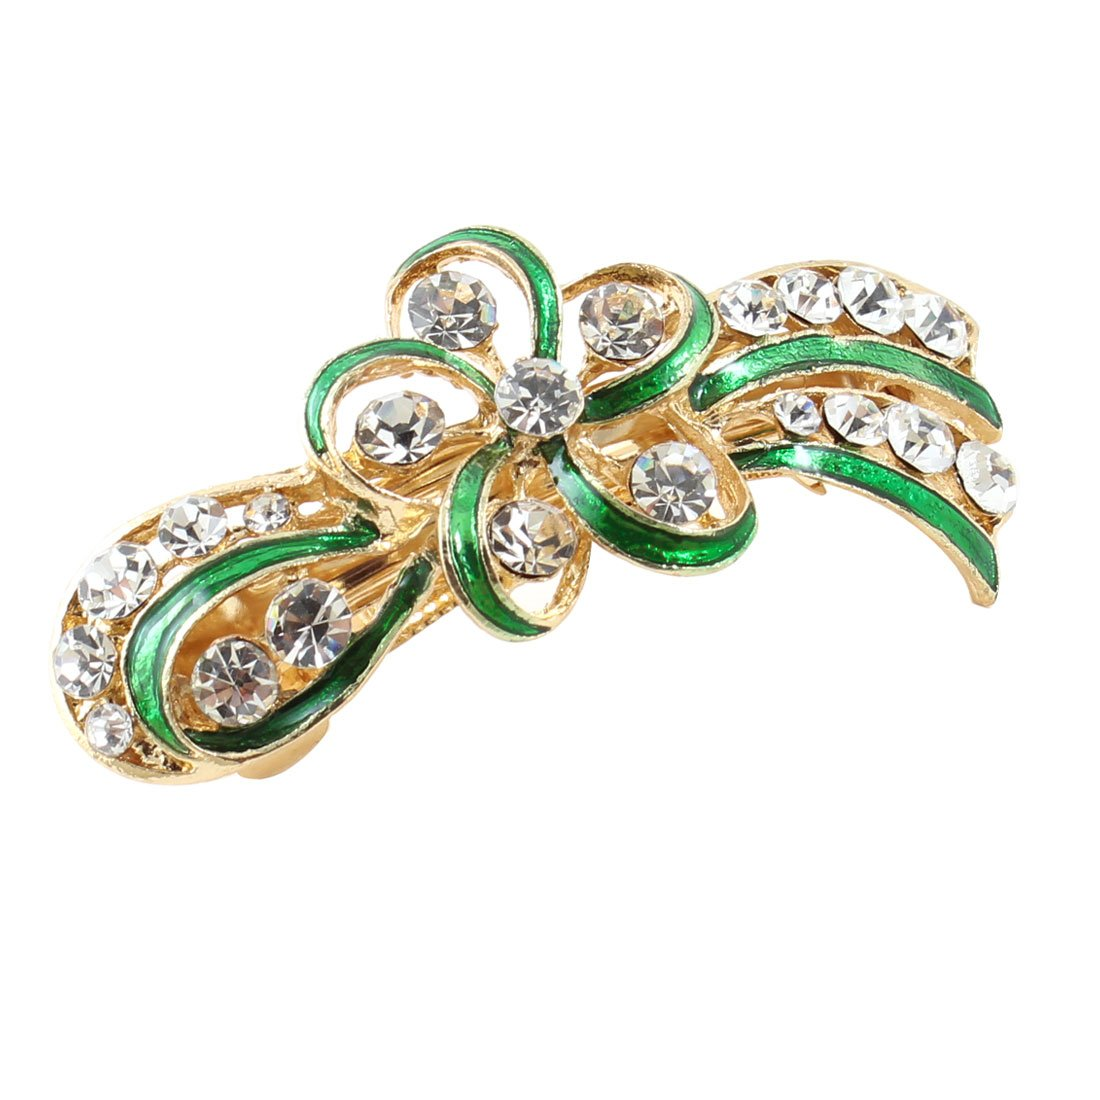 uxcell Lady Party Green Flower Design Rhinestone Barrette French Hair Clip a13060500ux0457